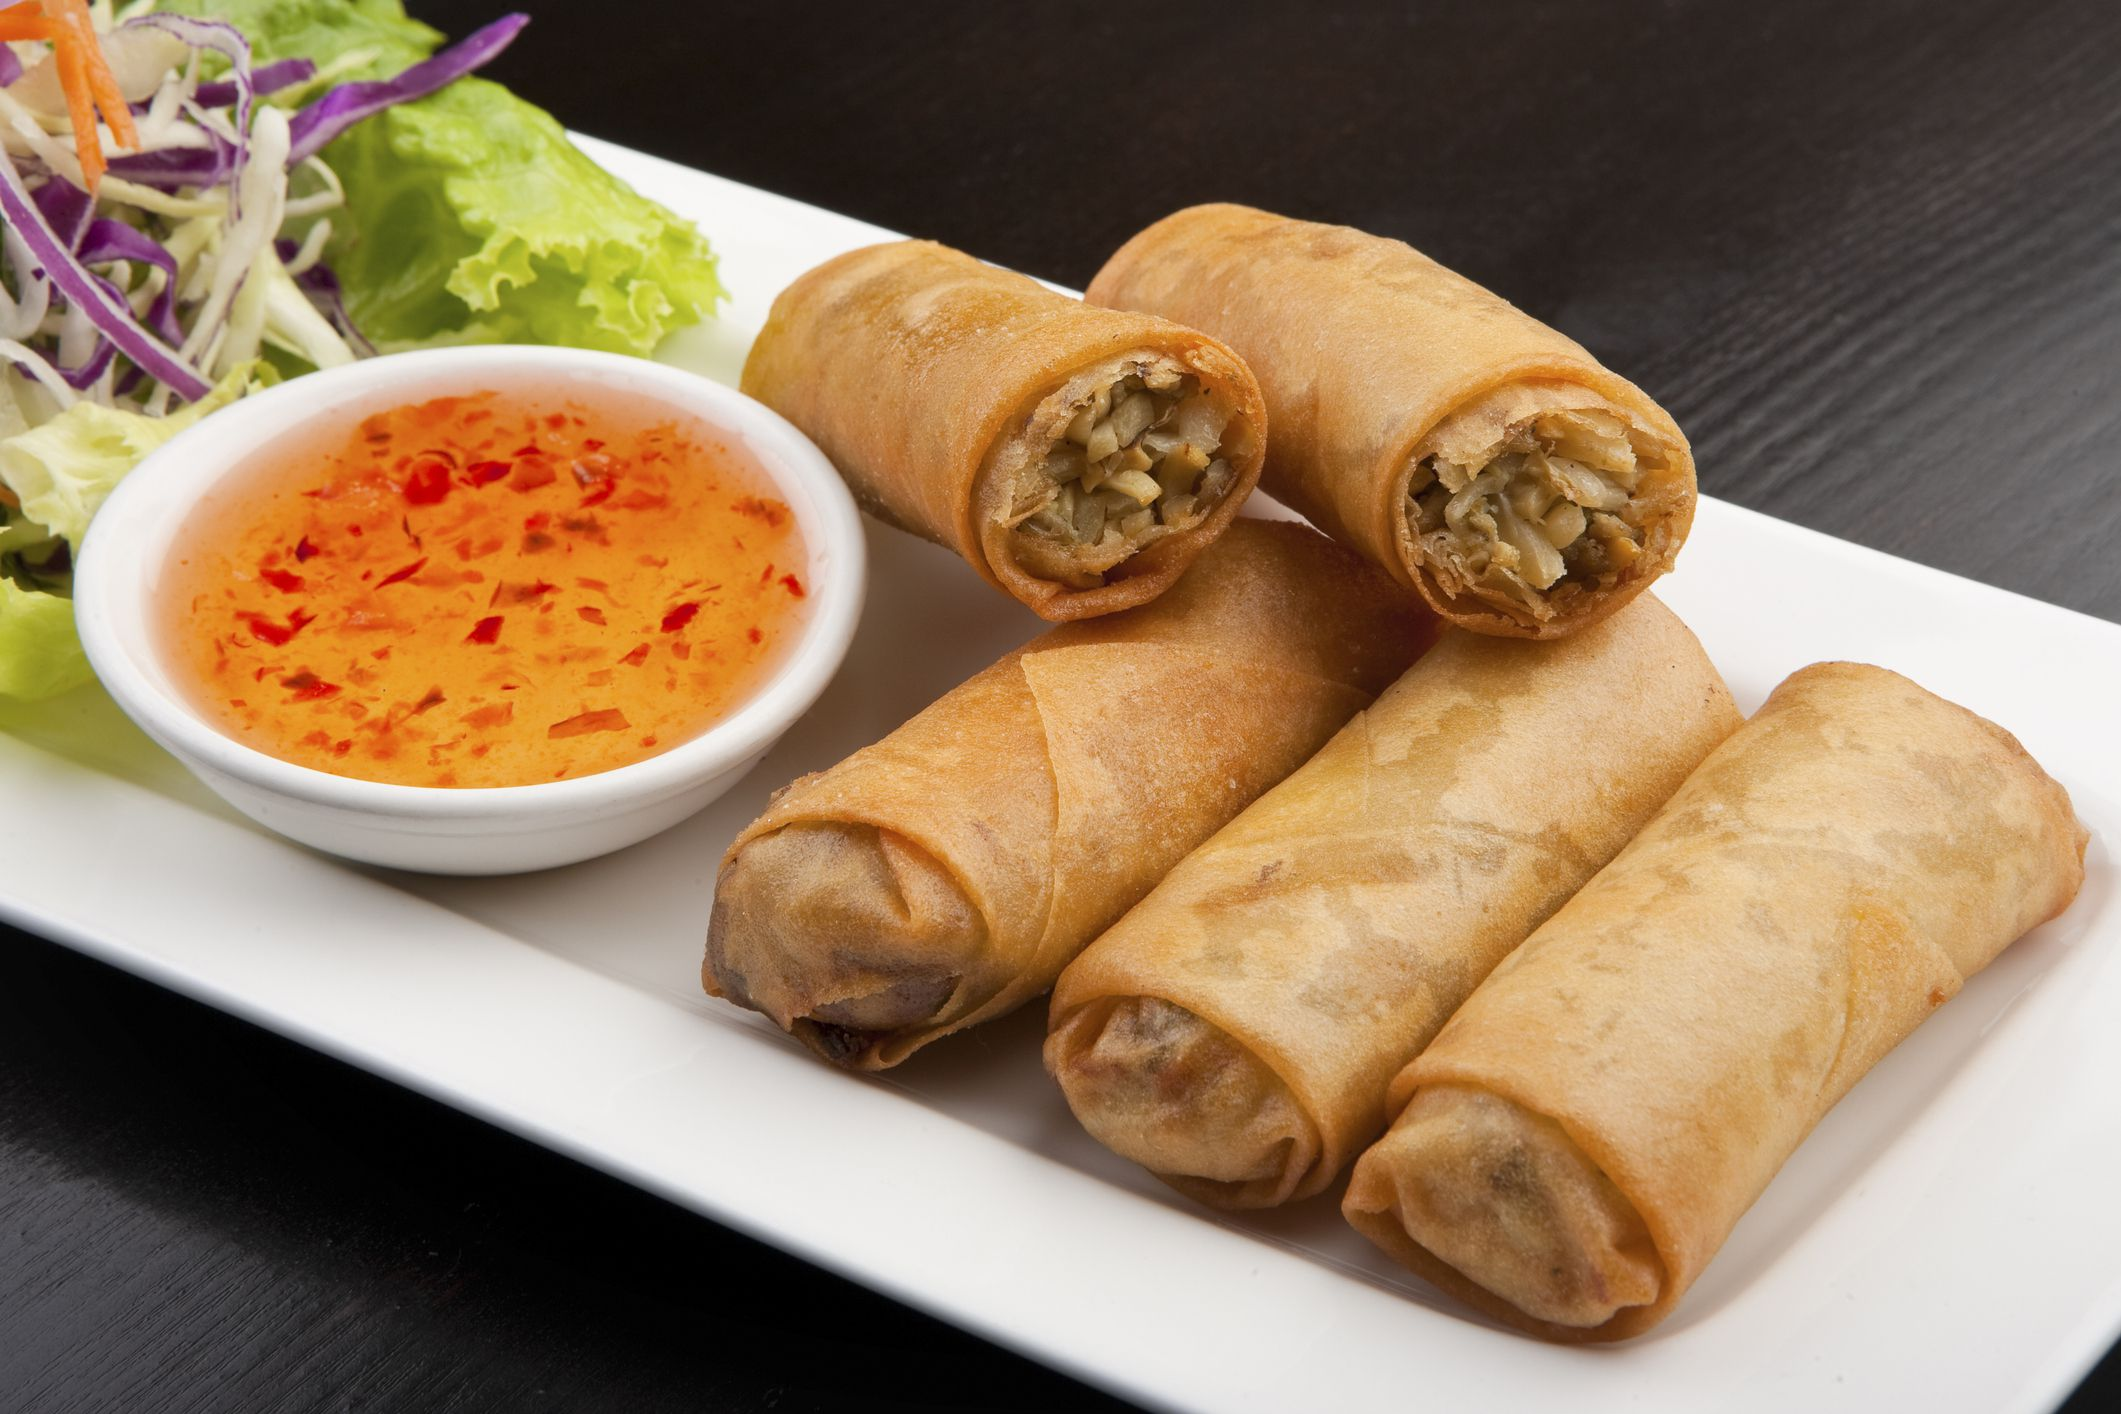 These 5 Thai Spring Roll Recipes Make Amazing Springtime Appetizers